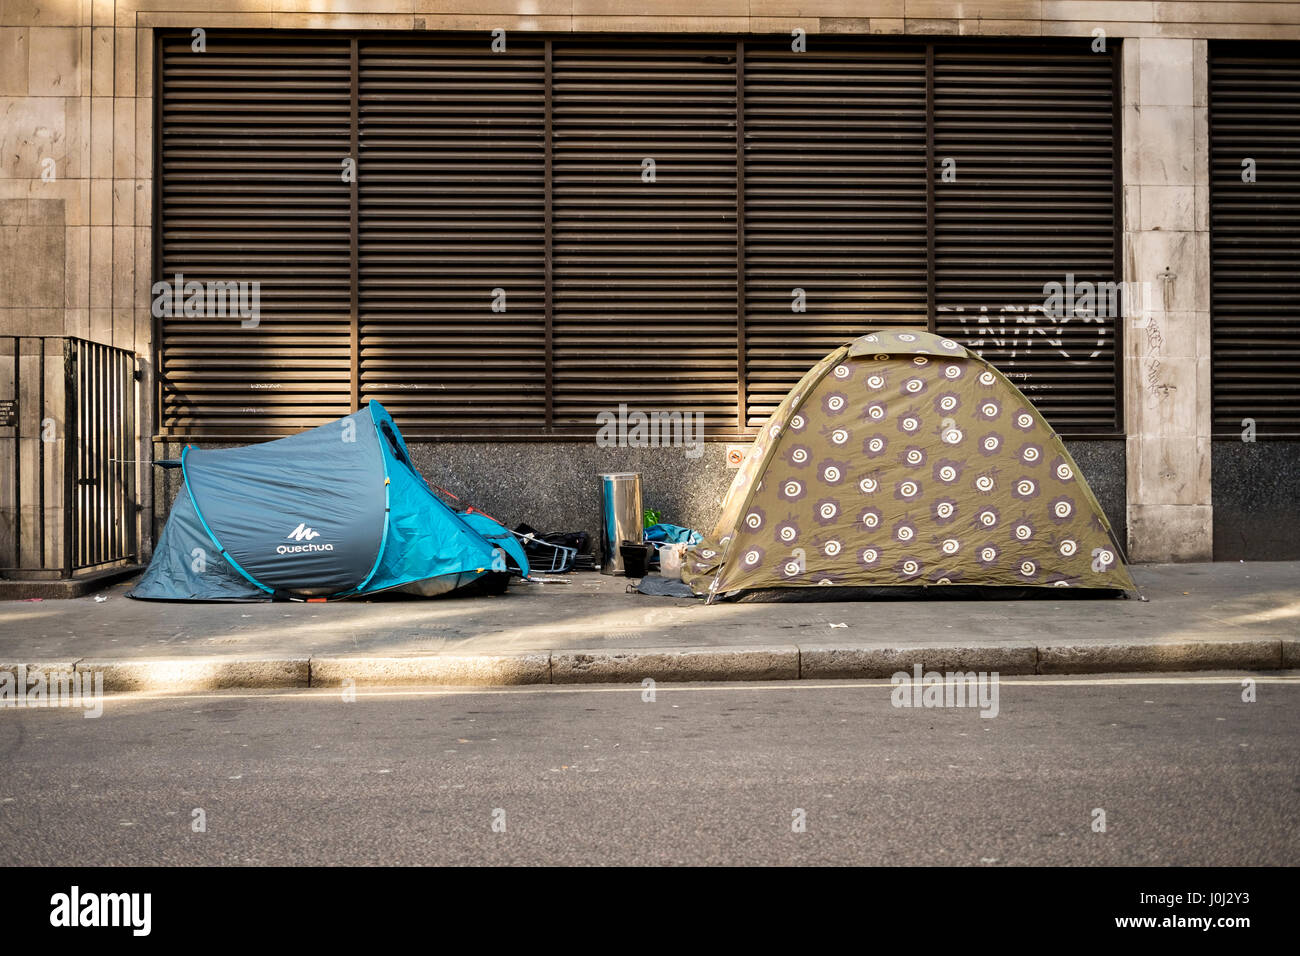 Two homeless tents on Eastcastle Street, just metres from the bustling commercial Oxford Street in London's affluent Stock Photo